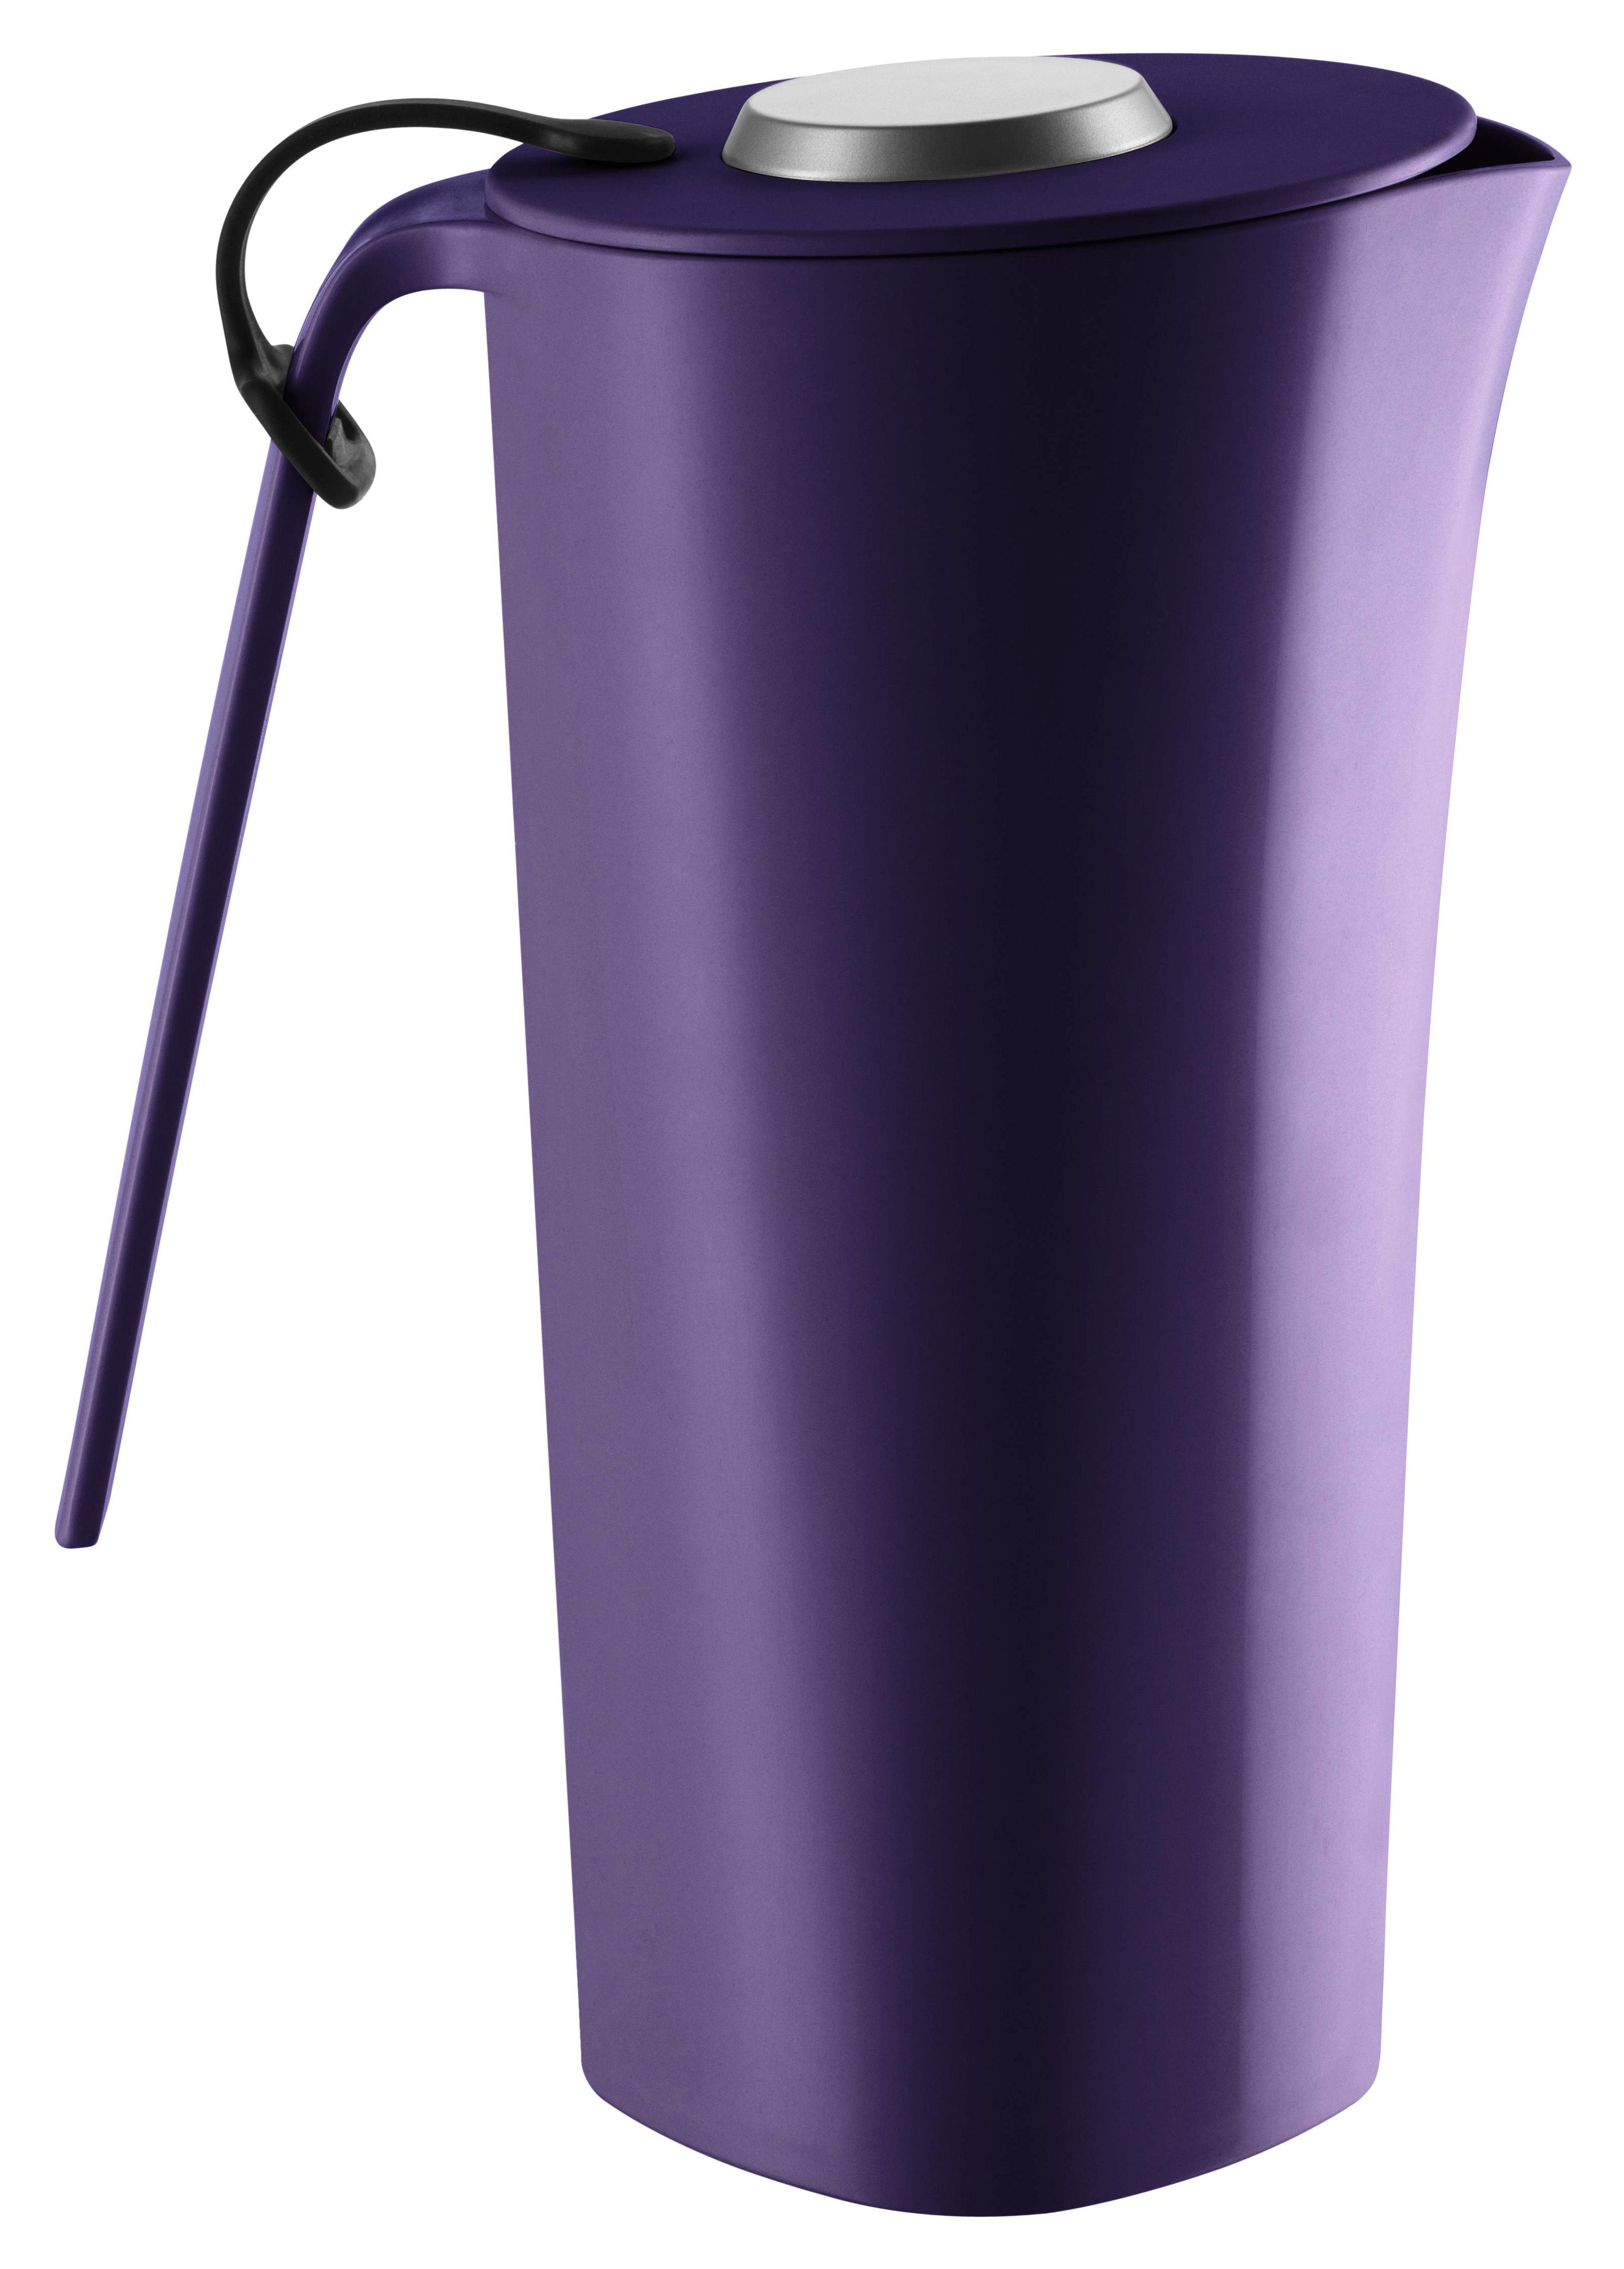 Titan Insulated jug - Thermal carafe Purple by Italesse